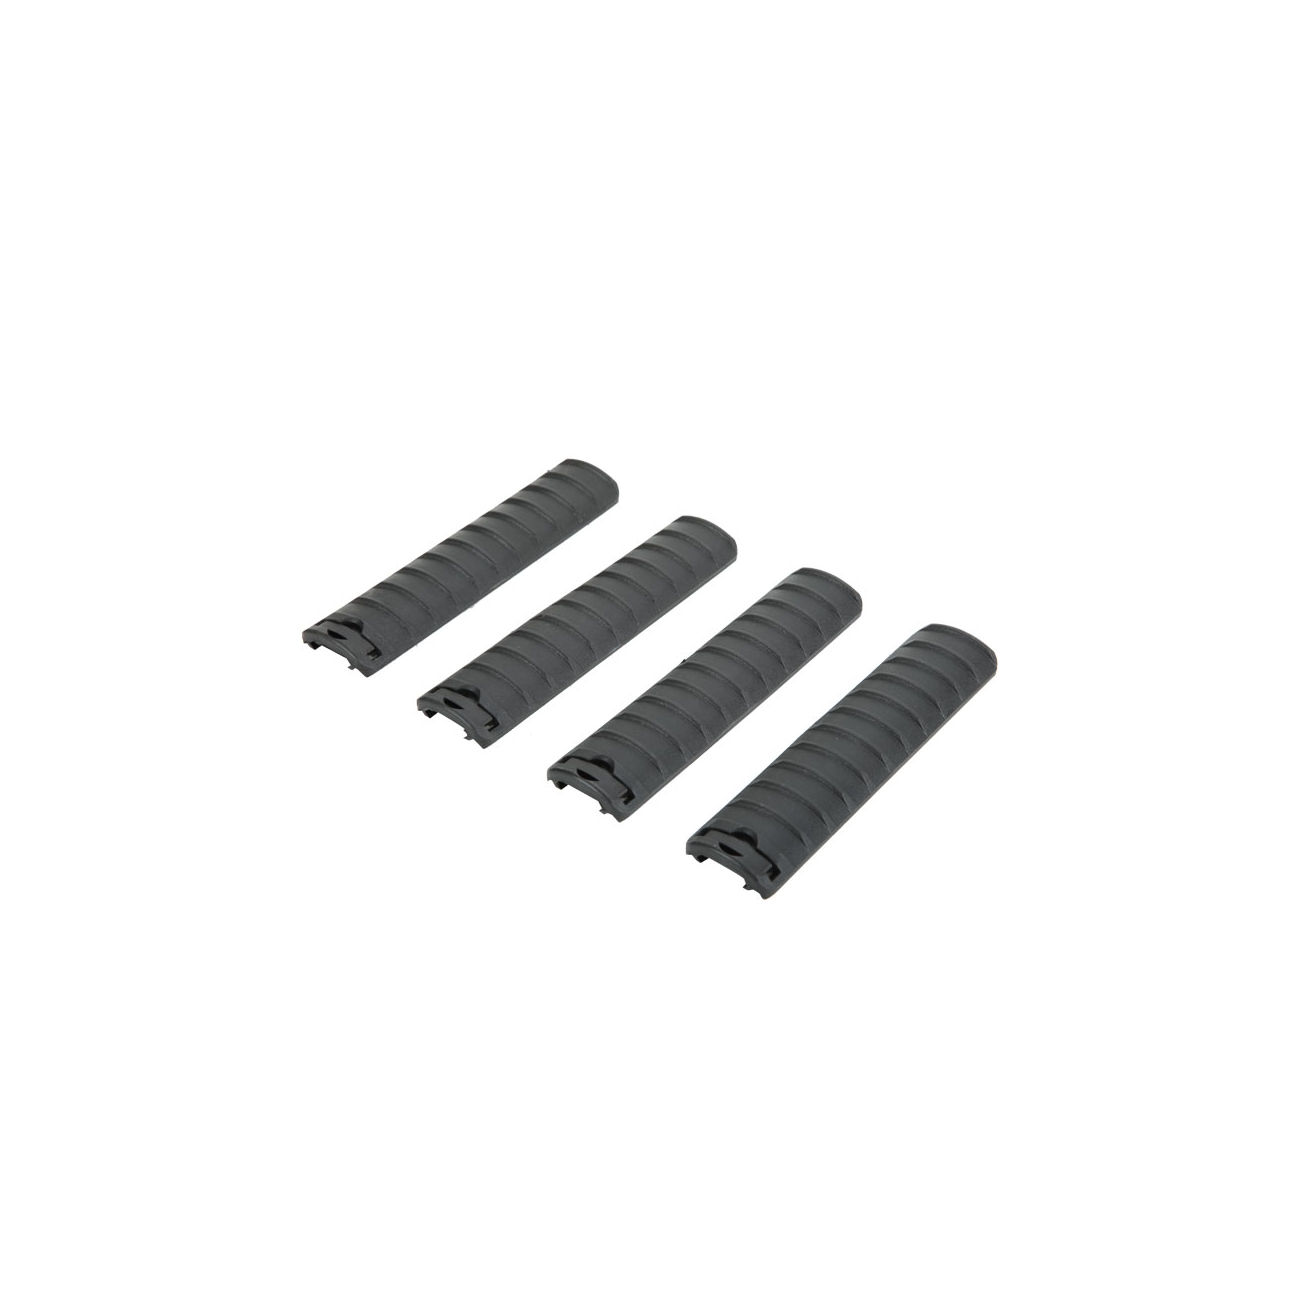 DBoys Rail Covers 158mm 4er Set - schwarz 0